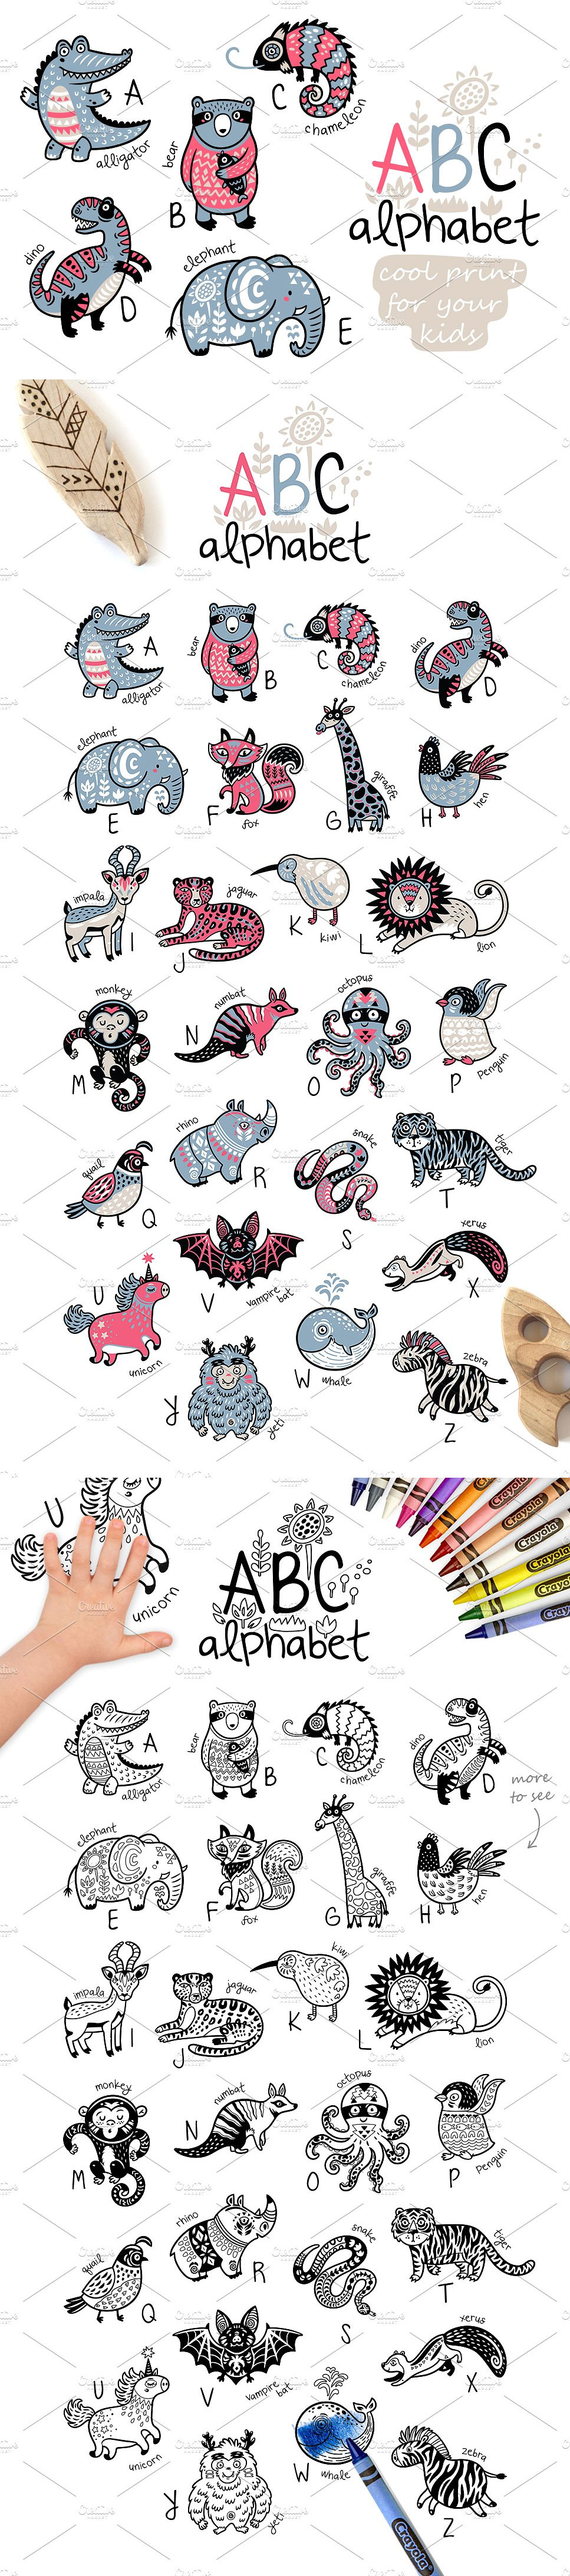 Free Vector Illustrations The package includes 2